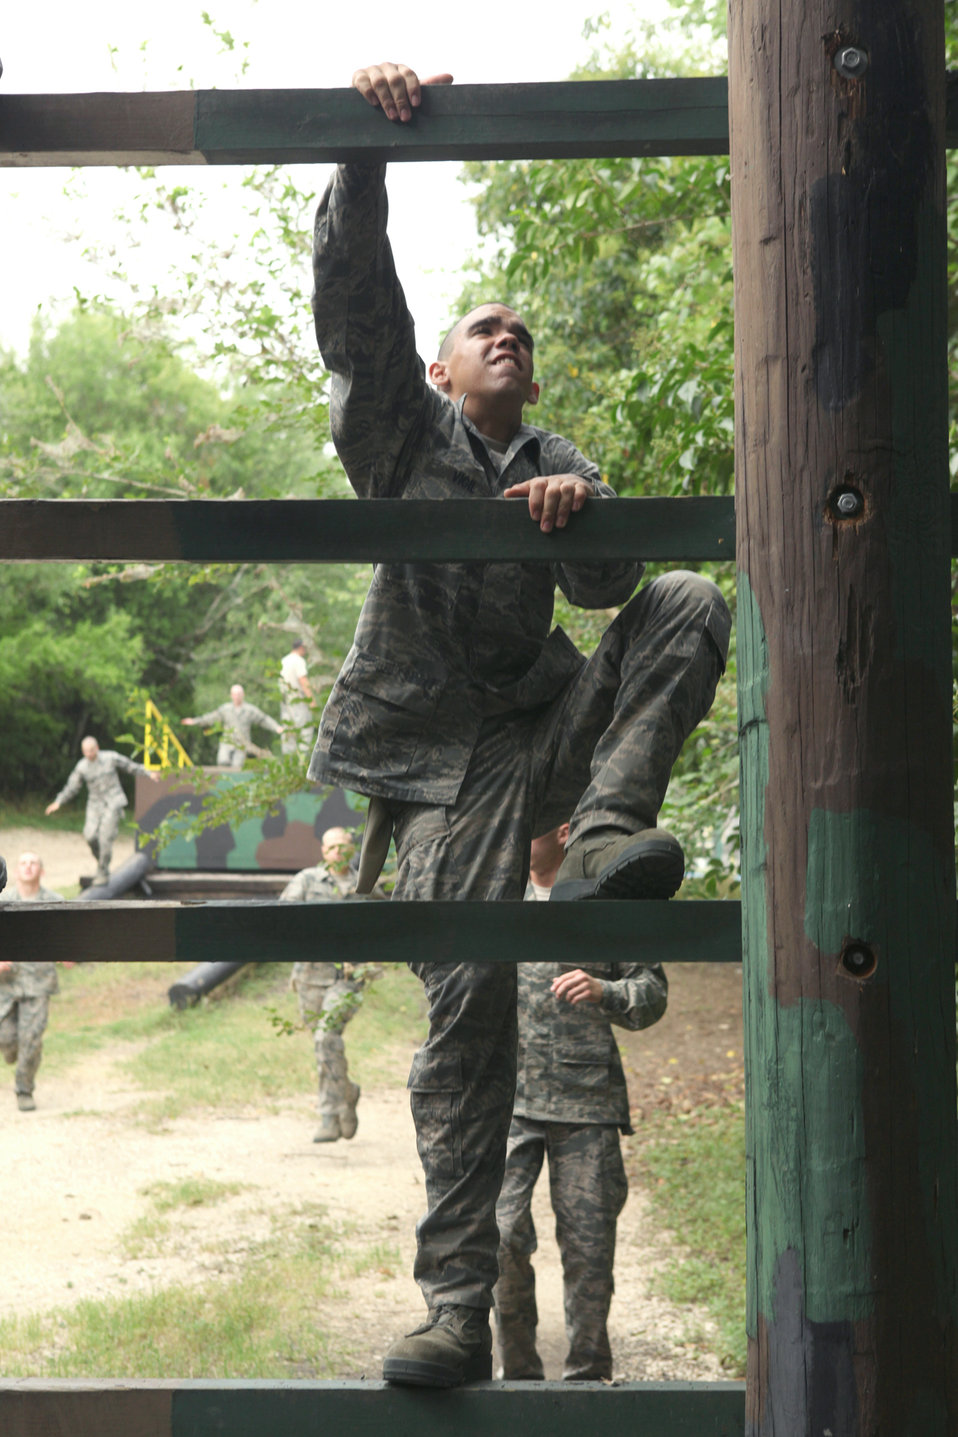 Trainees take on confidence course